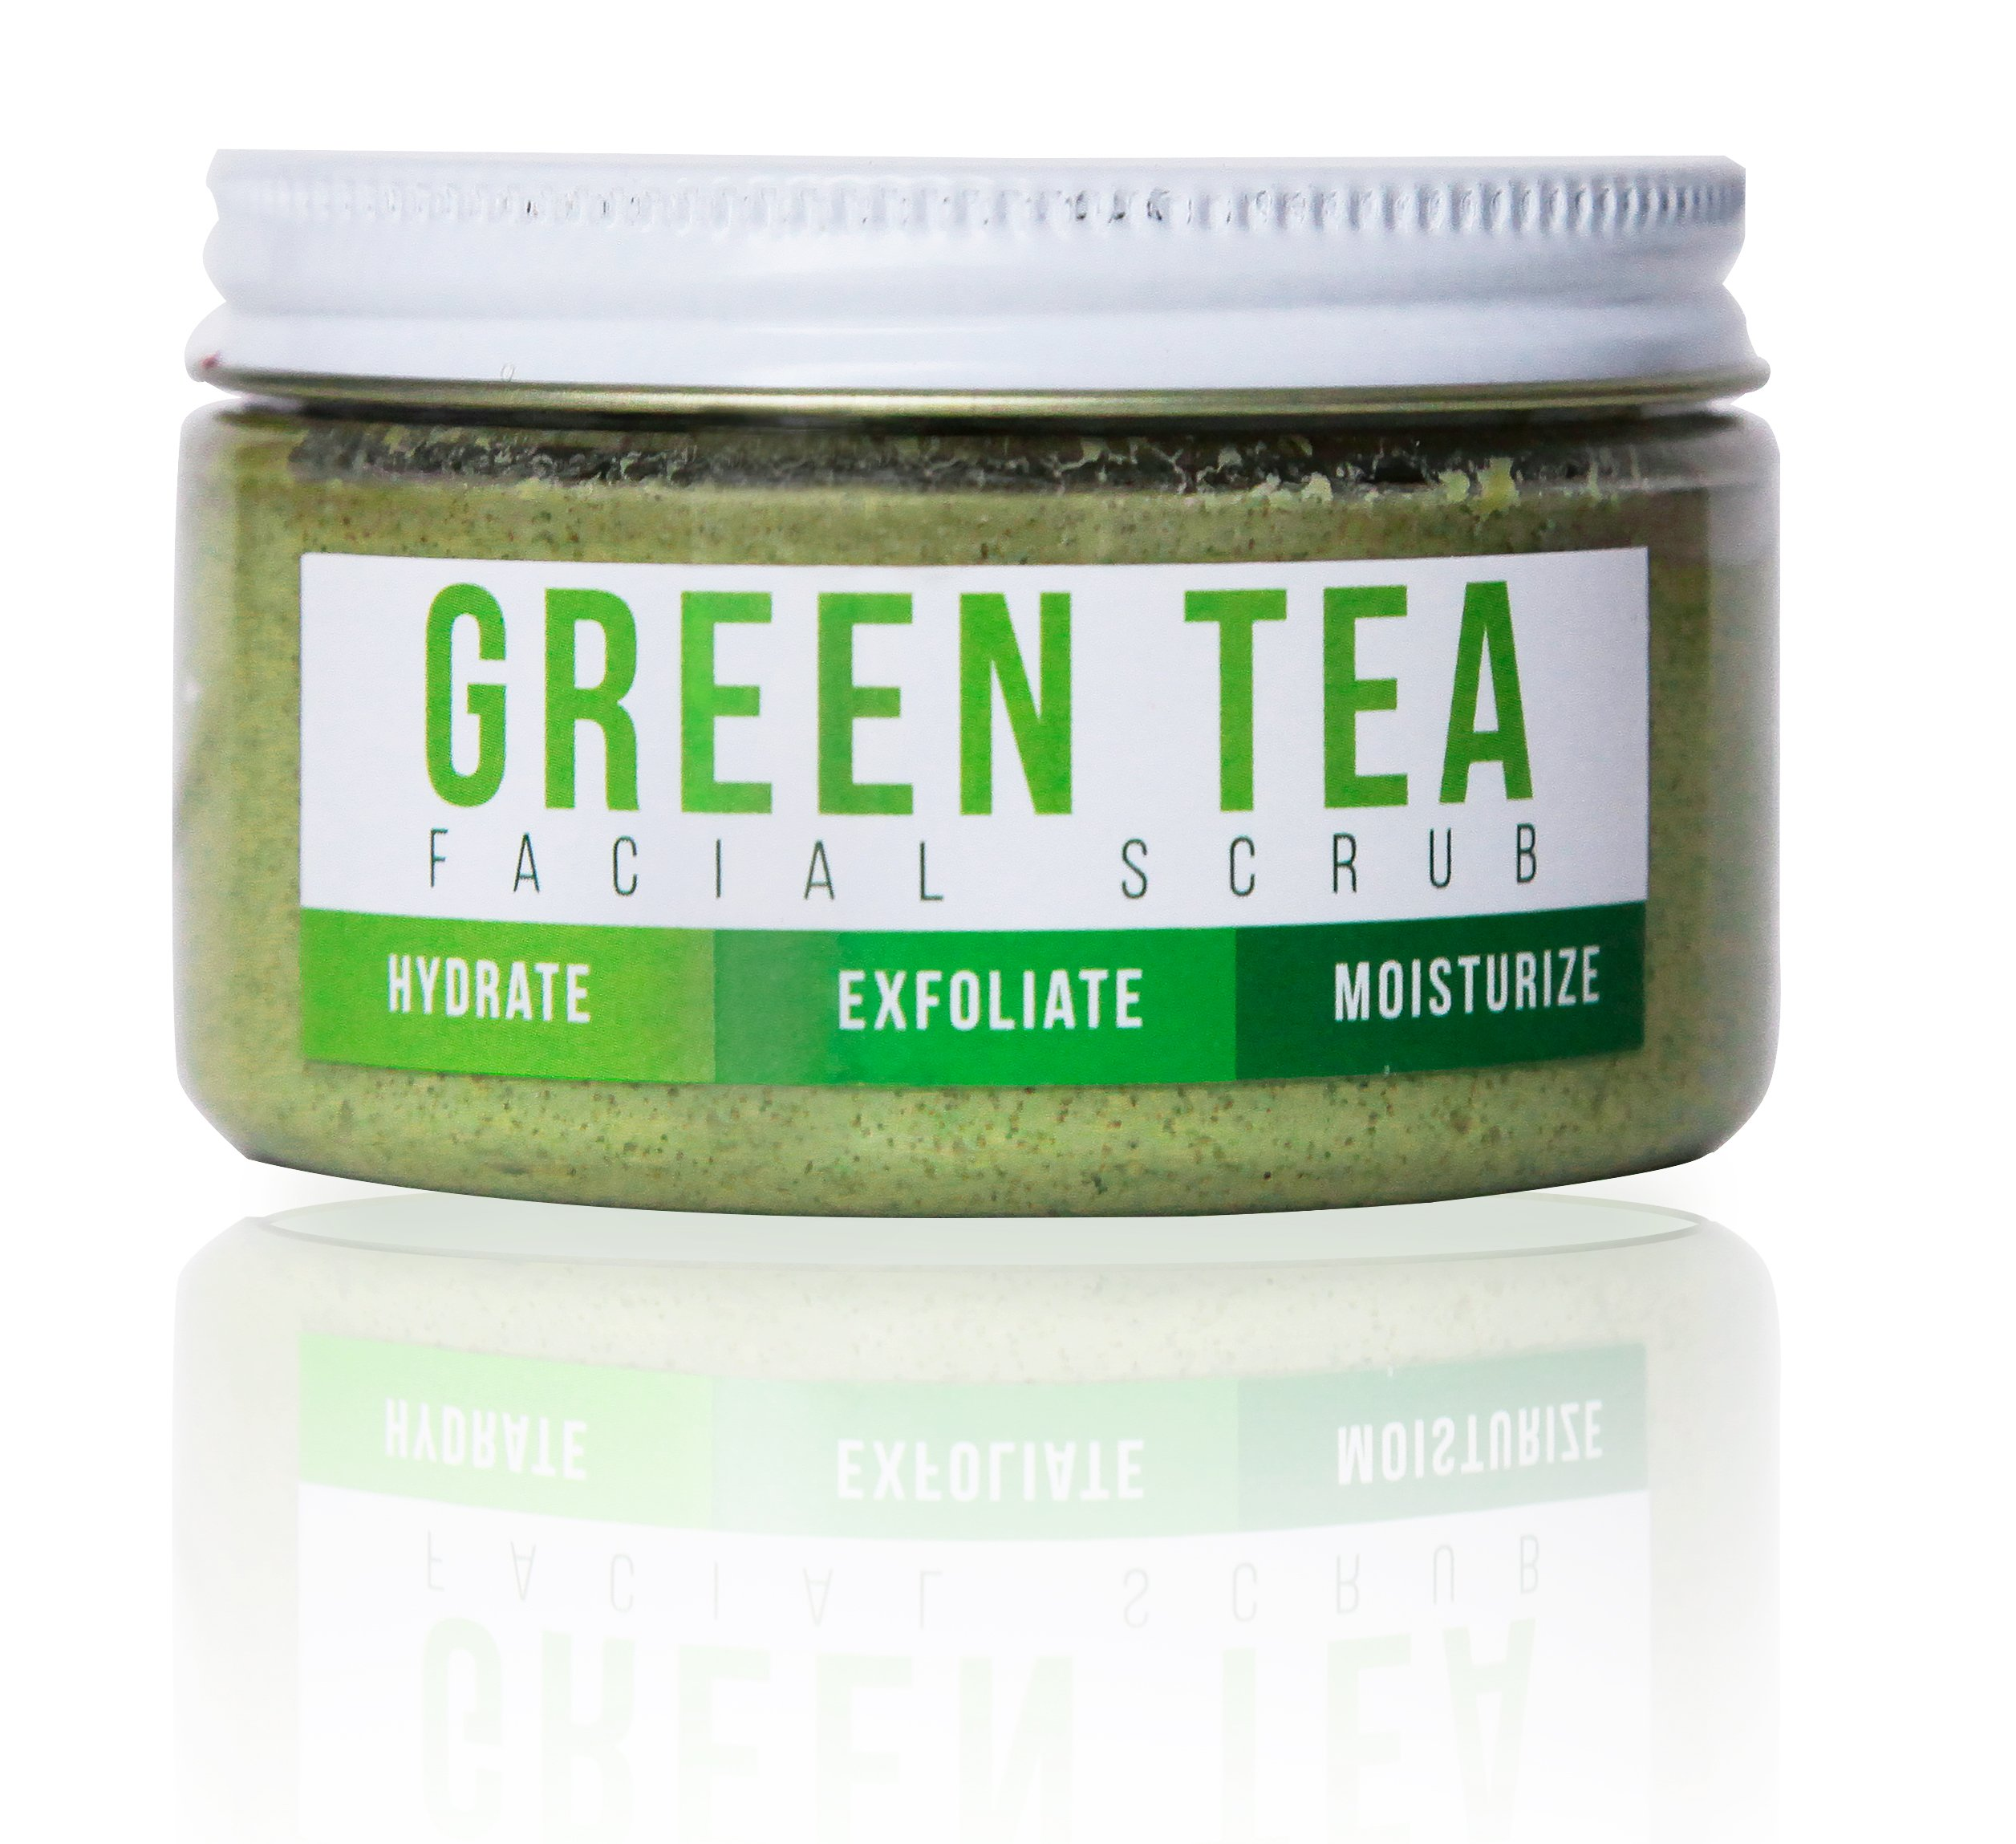 GREEN TEA DETOX FACE SCRUB By Teami | 100% Organic Facial Scrubs | Exfoliate, Hydrate, & Moisturize All Skin Types | with Lemongrass for Blemishes & Blackheads, and the Best Exfoliating Sugar.